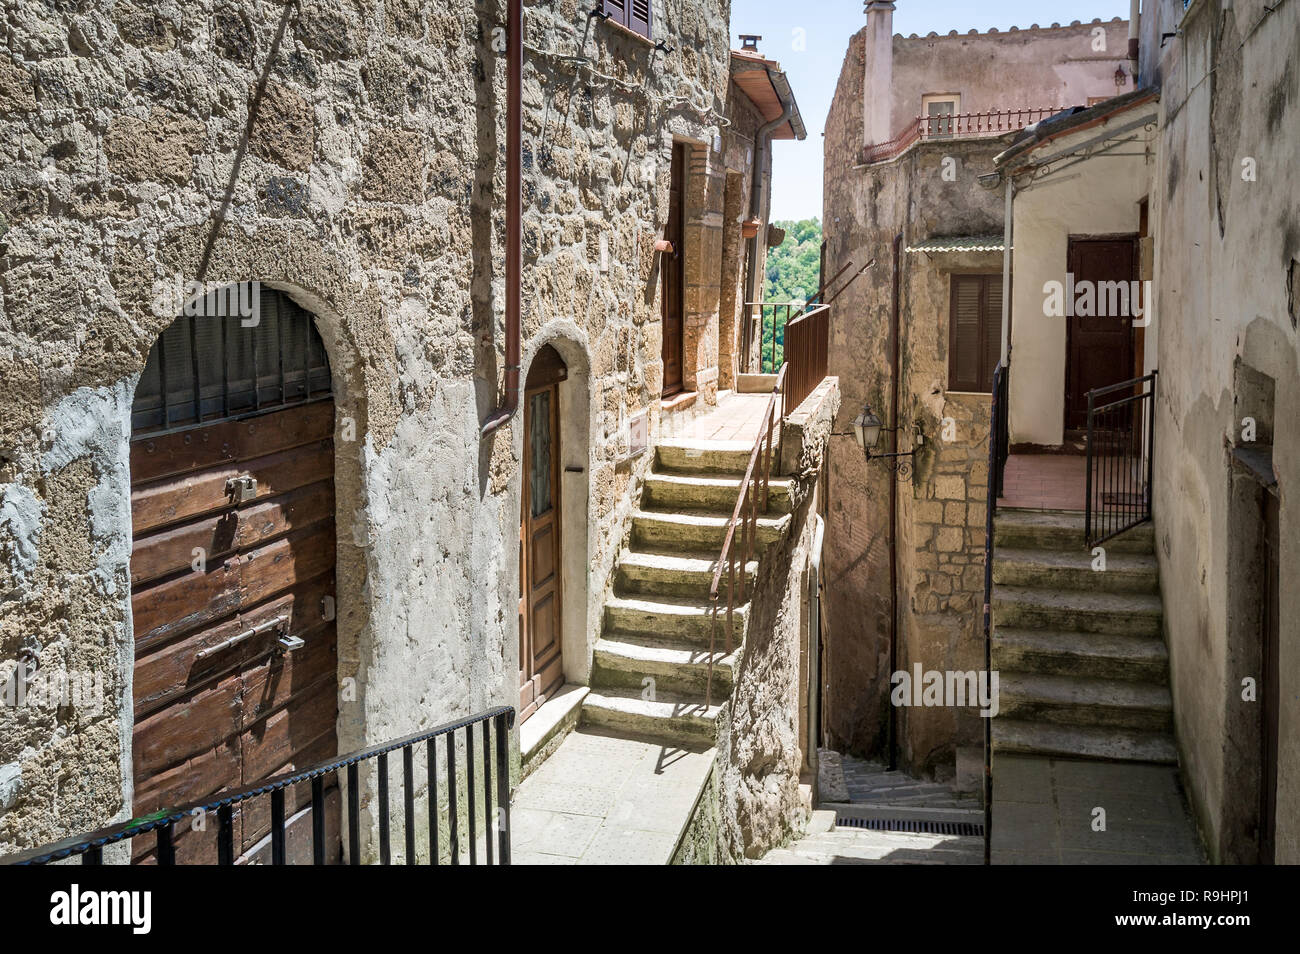 Romantic streets of Pitigliano old town. Medieval village in the fortress at Grosseto province, Italy. - Stock Image